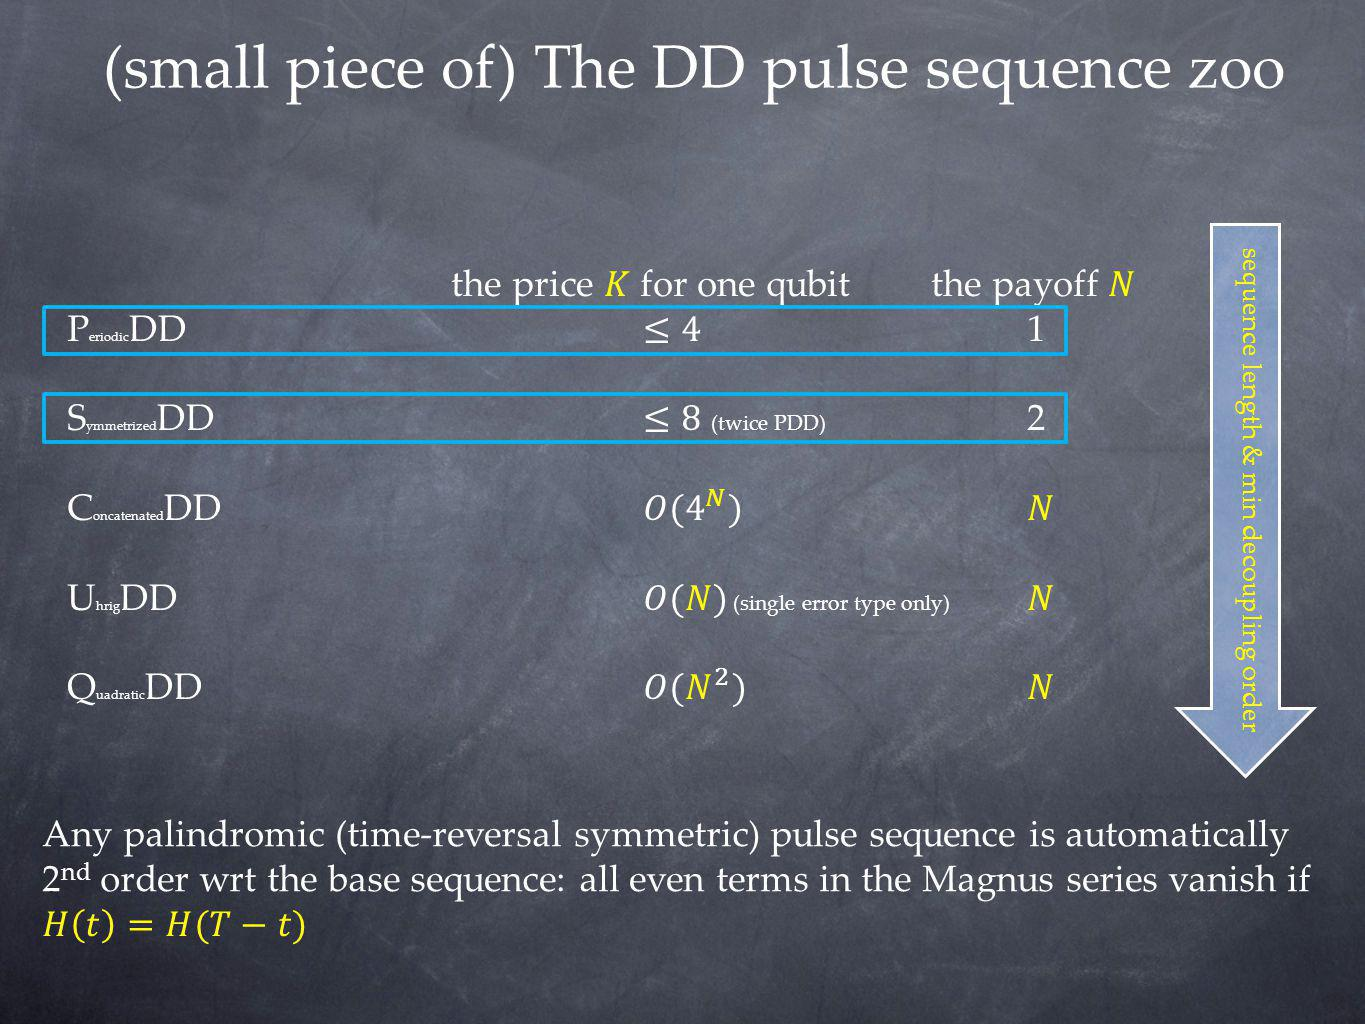 (small piece of) The DD pulse sequence zoo